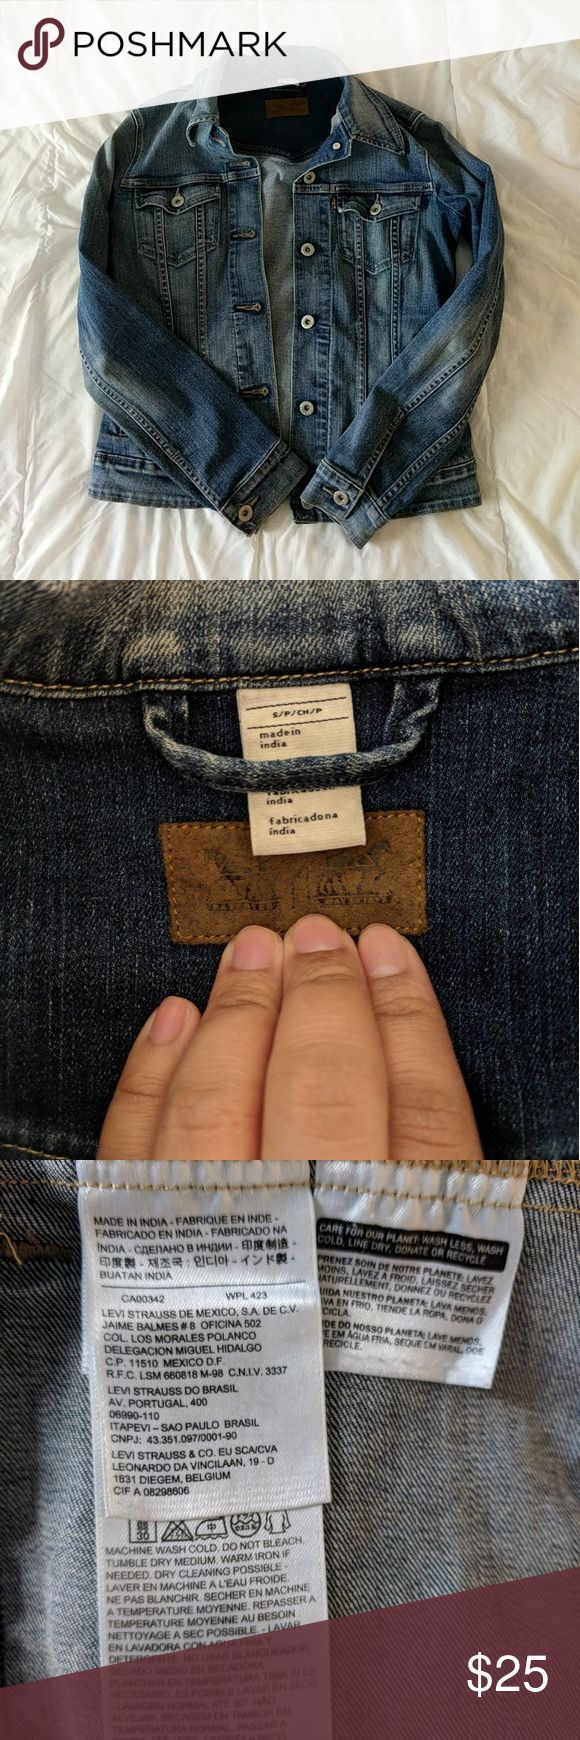 """Levi's Jean Jacket Gently and barely used Jean jacket, non smoking home, and I bought it at the Levi's store. It's called the """"Classic stretch Trucker Jacket"""" on Levi's website. Has an original fade to it but not distressed look. No holes and all functional pockets and buttons. It's durable and has a stretch to it. No Flaws. No Trades. Levi's Jackets & Coats Jean Jackets"""